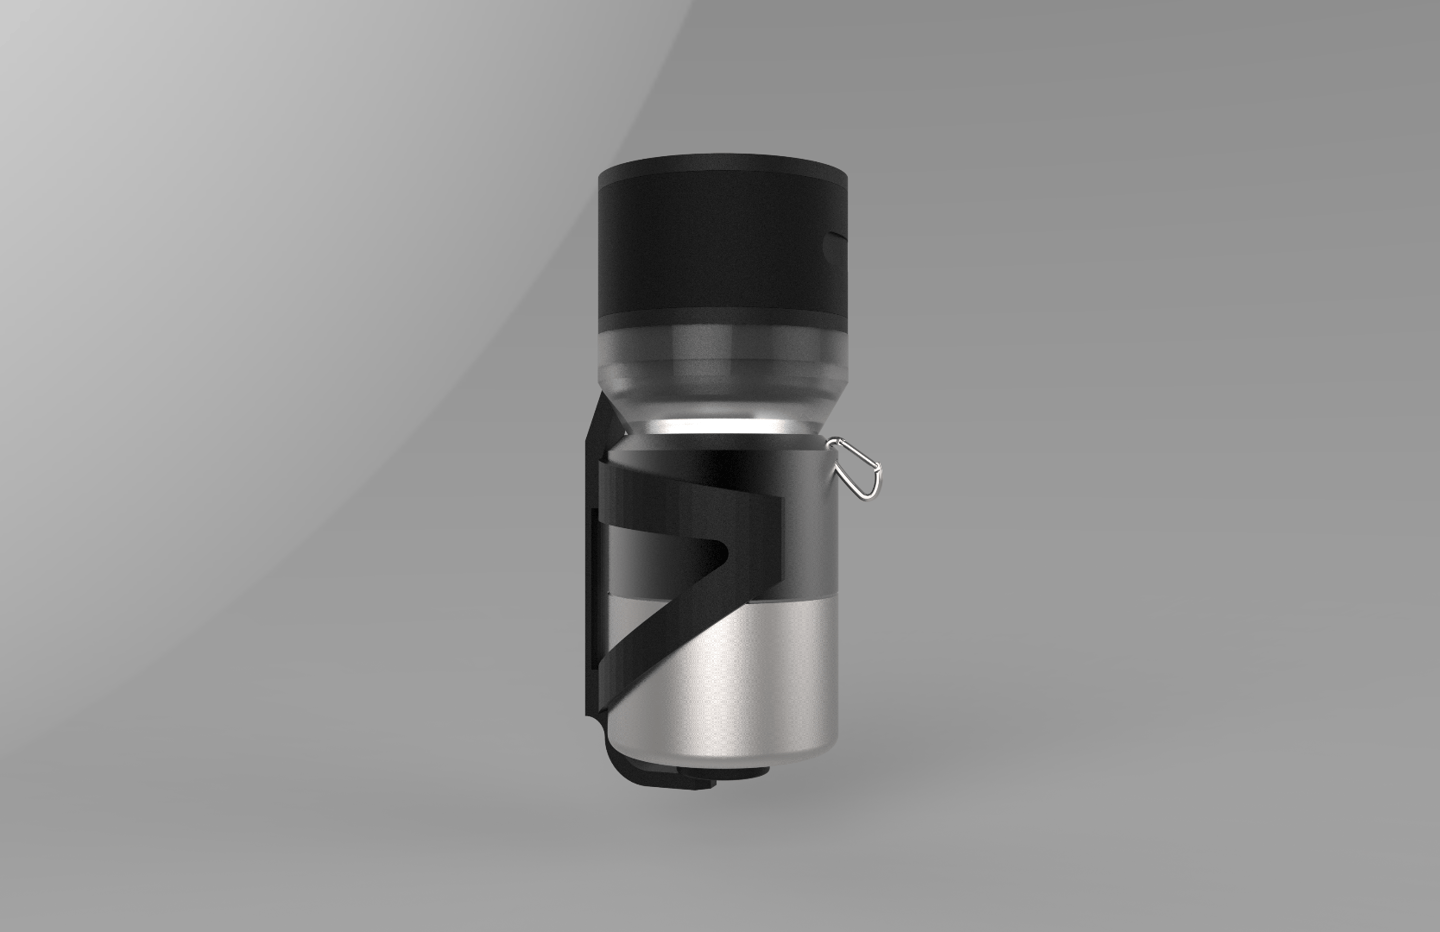 Another Fuse concept now in the initial development stages, this thermo flask is designed to fit in a bicycle water bottle cage